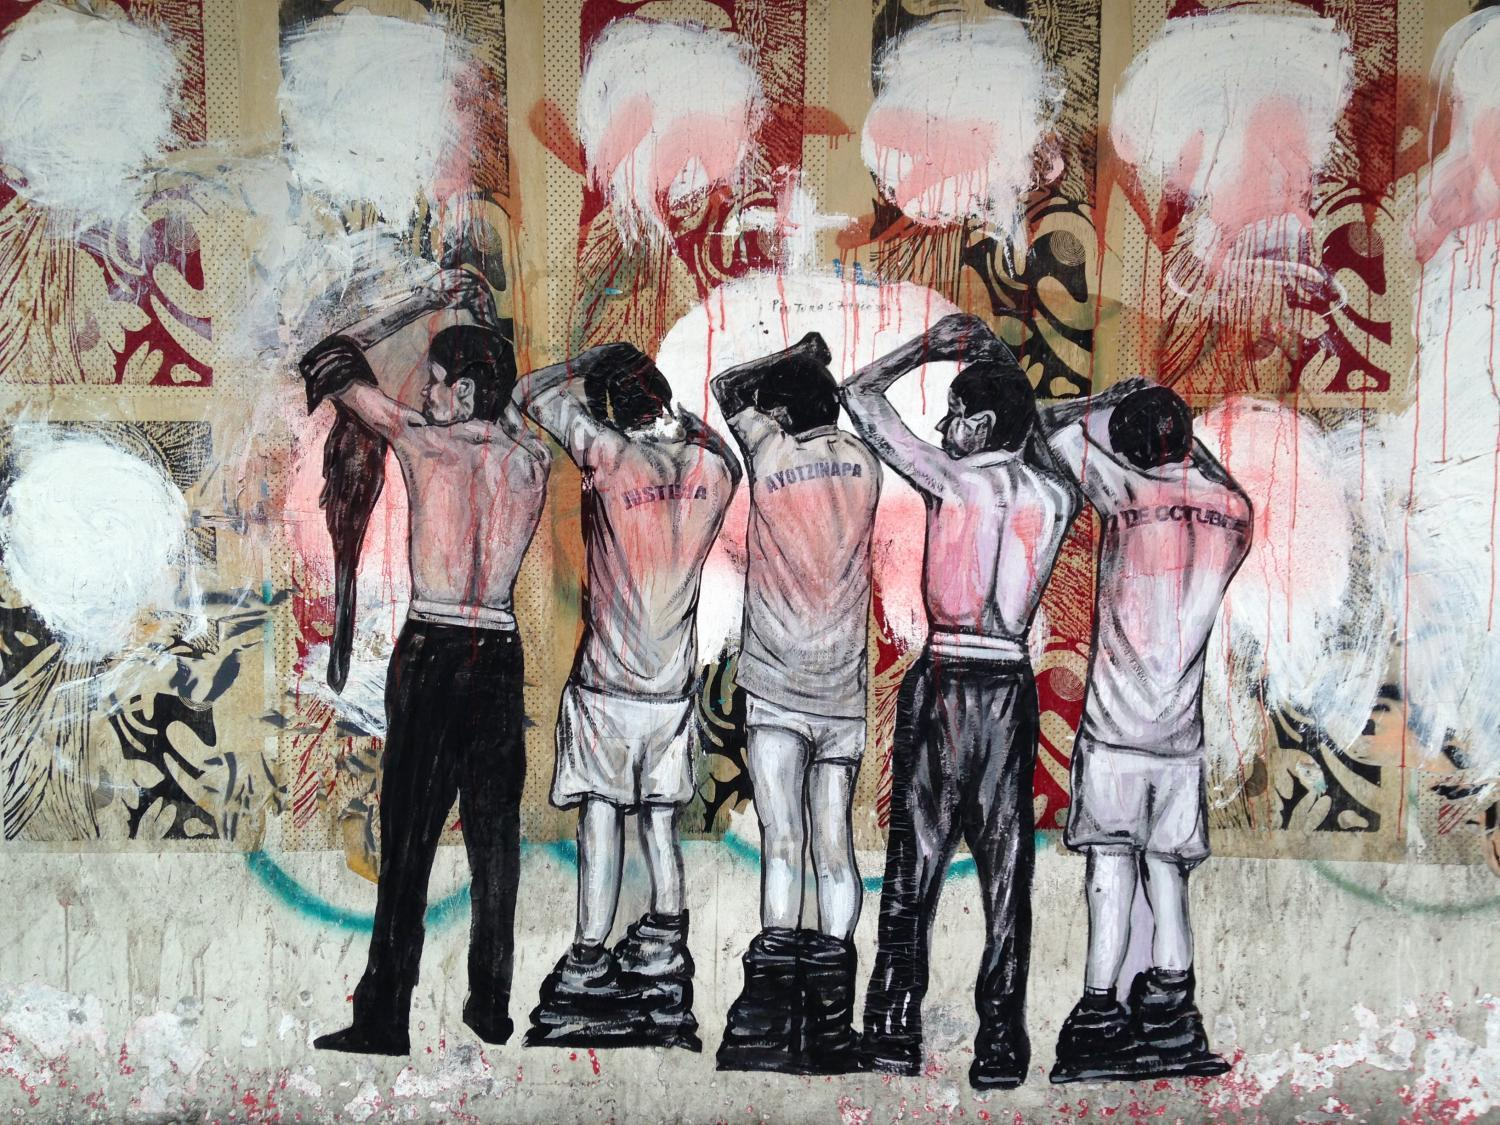 A mural depicting two cases of violence against university students in Mexico